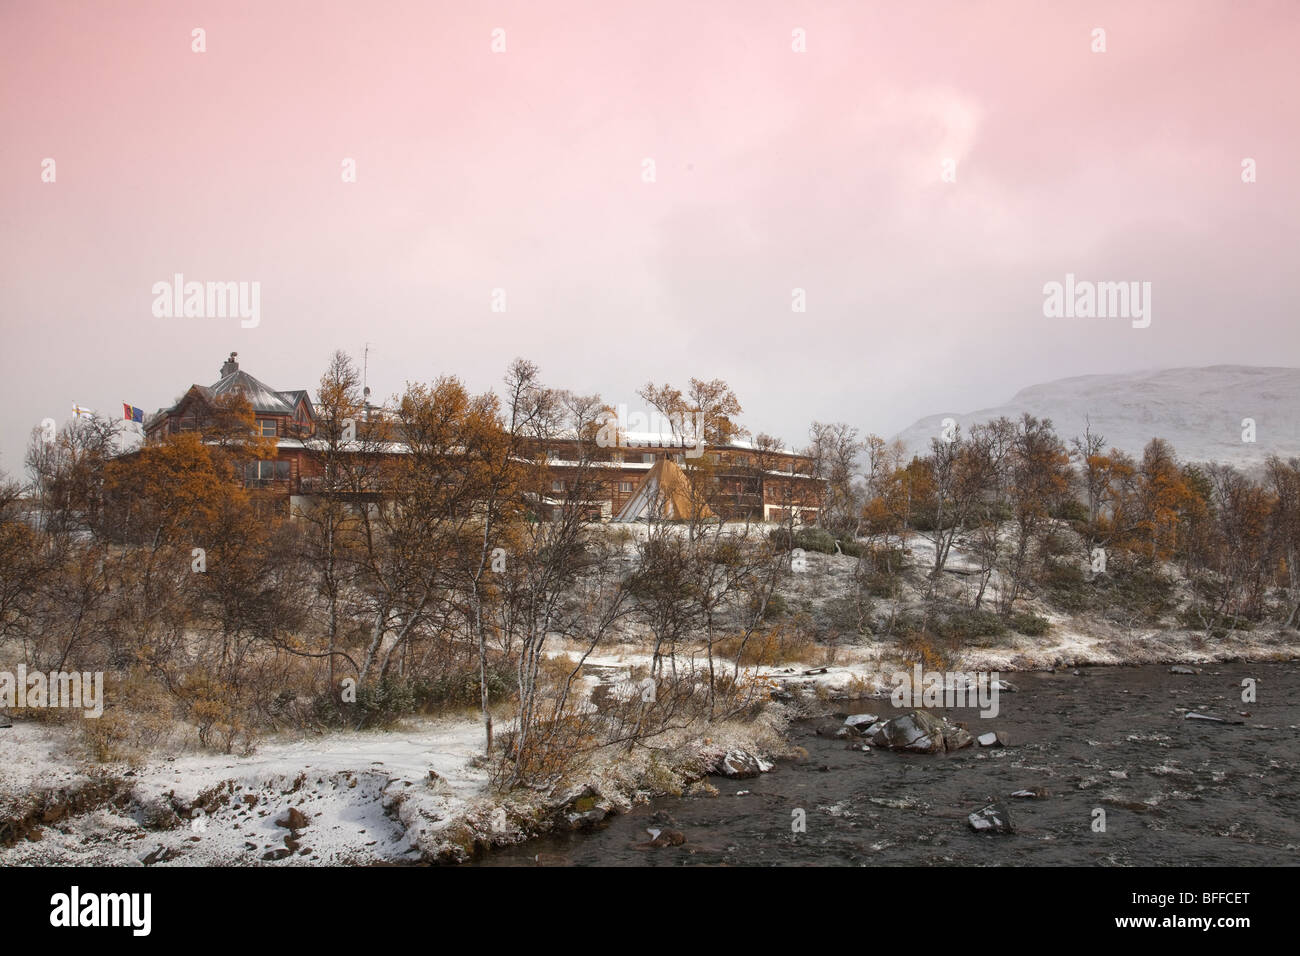 brook Storulvån fjellstation and birch forest in autumn with first snow and view over snowy forest - Stock Image